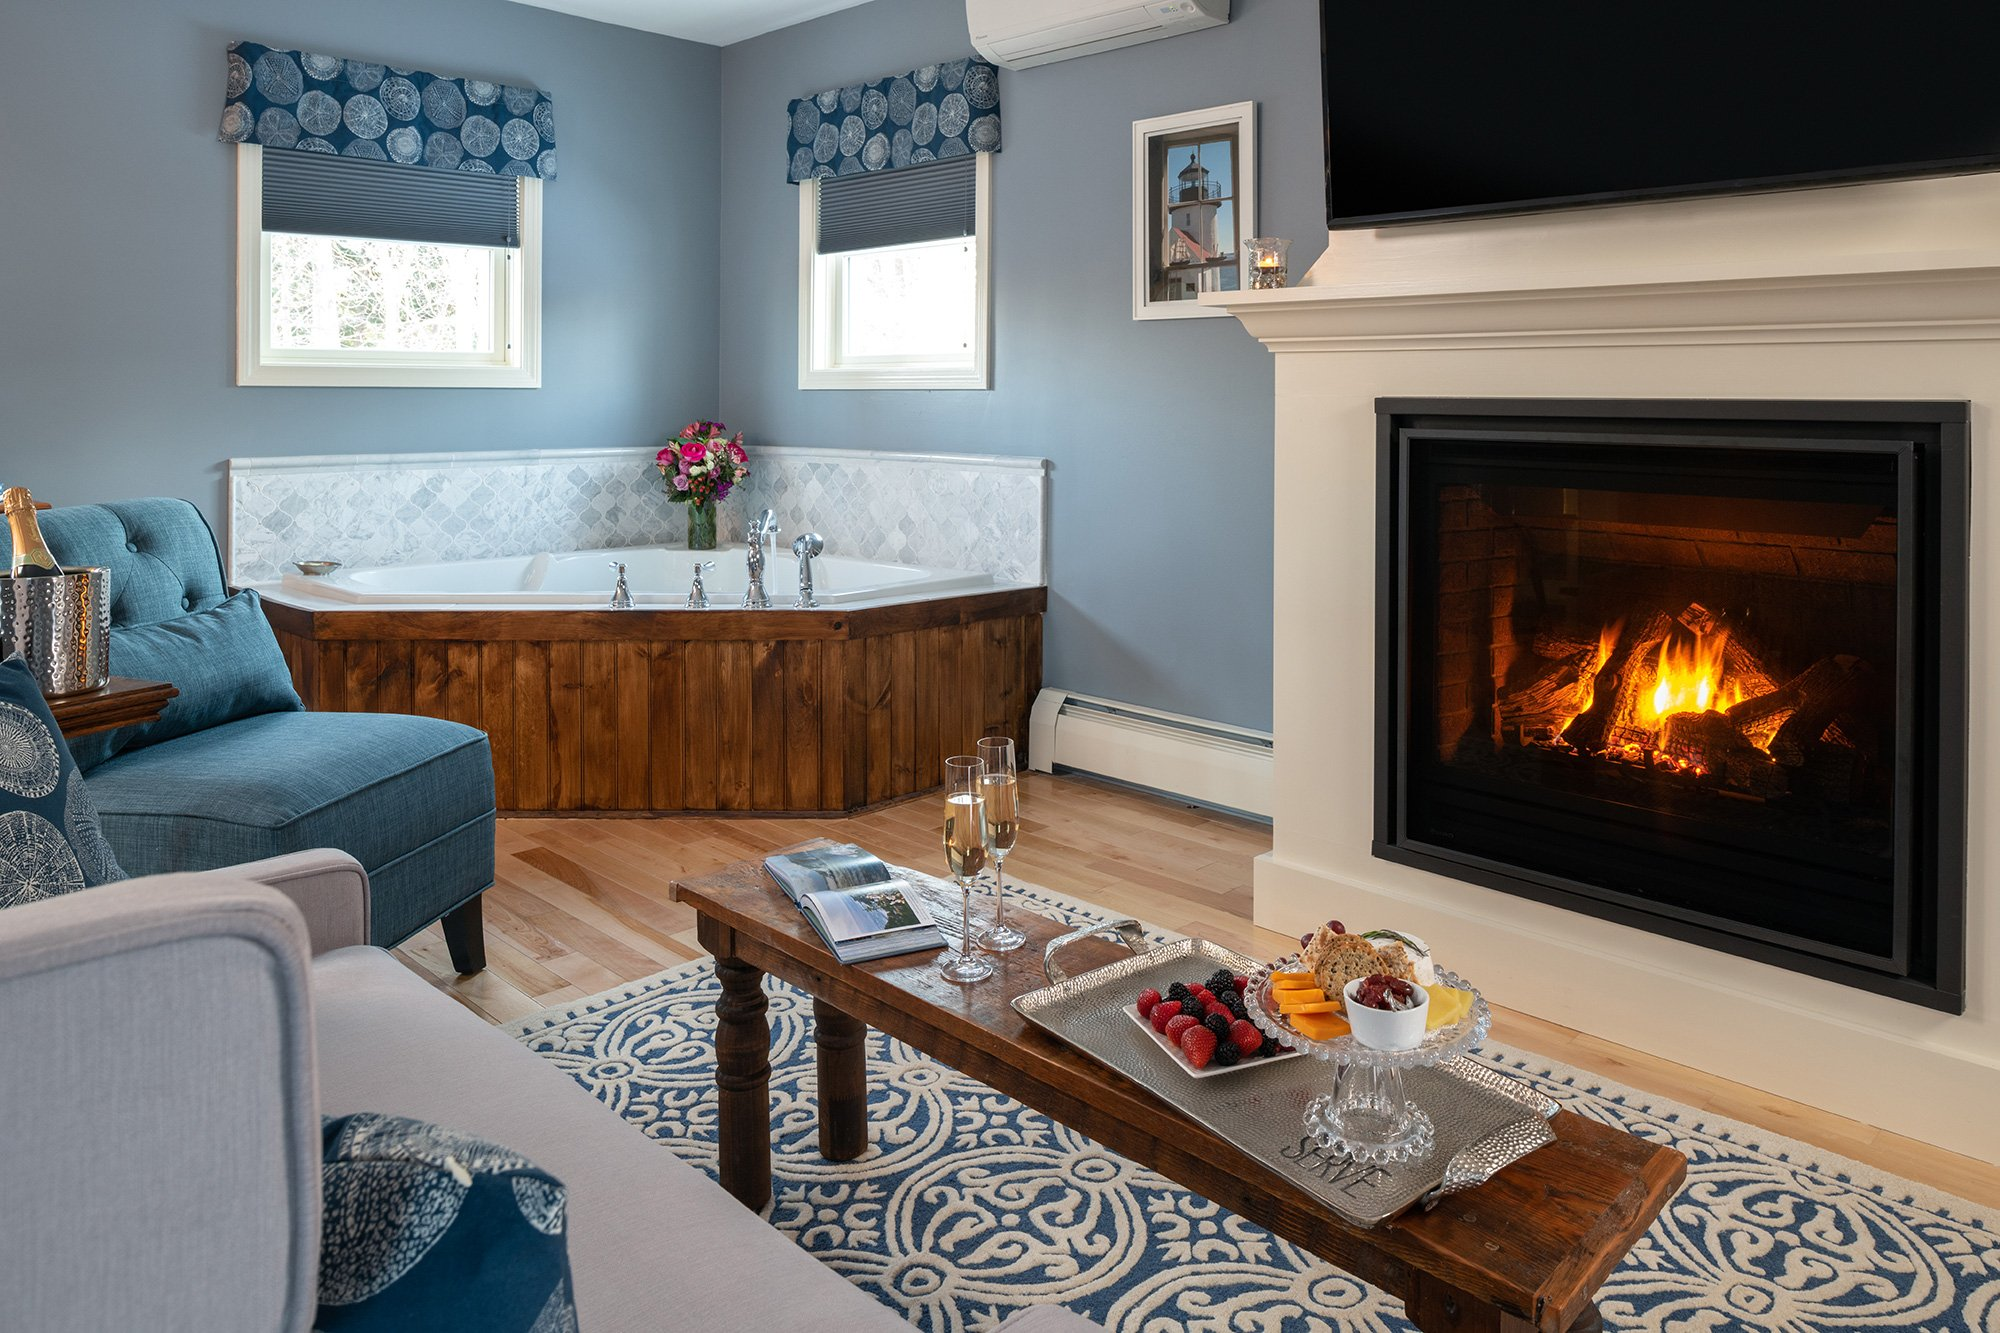 fireplace and tub